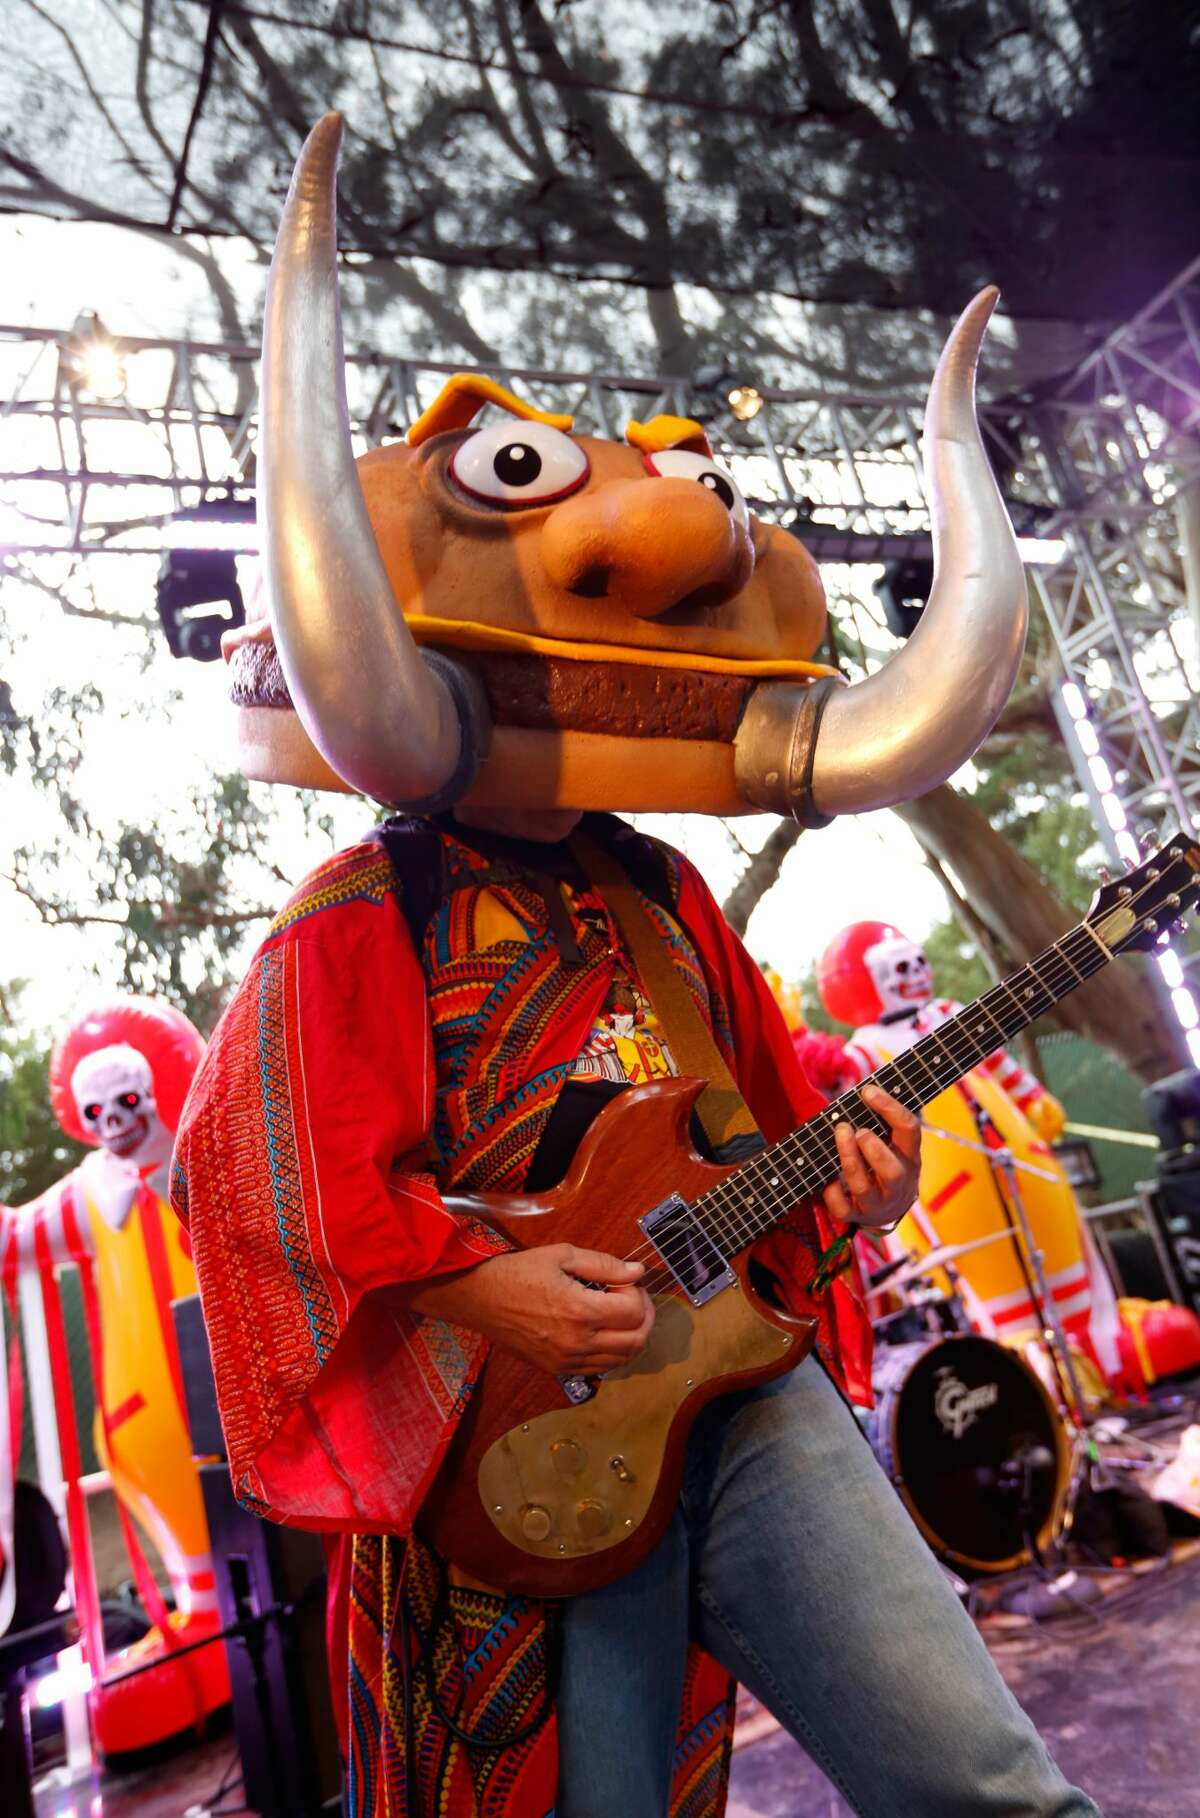 Mac Sabbath performs at the GastroMagic Stage during day 3 of the 2015 Outside Lands Music And Arts Festival at Golden Gate Park on August 9, 2015 in San Francisco, California. (Photo by FilmMagic/FilmMagic)